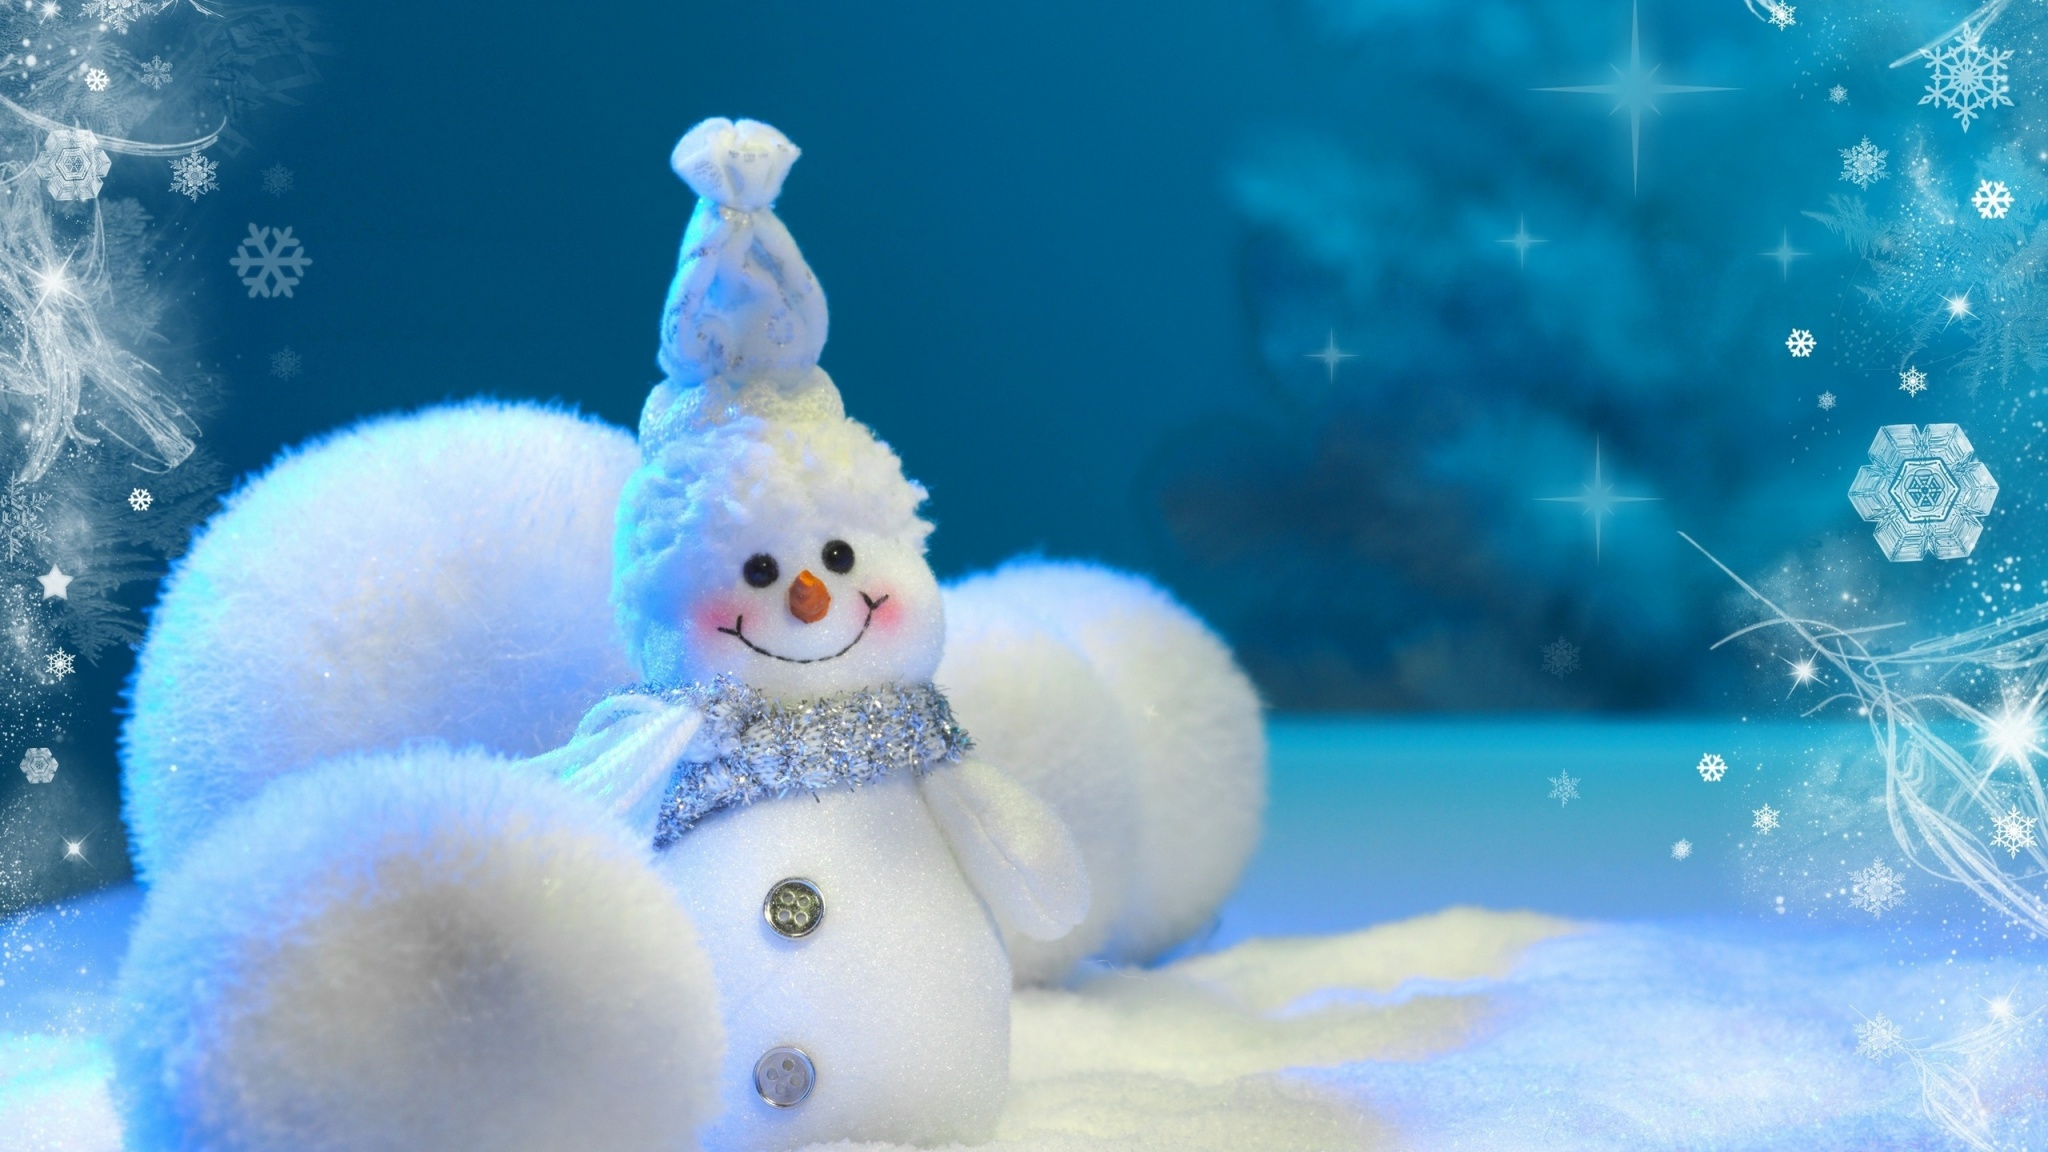 Cute Blue Snowman 2048 x 1152 Download Close 2048x1152